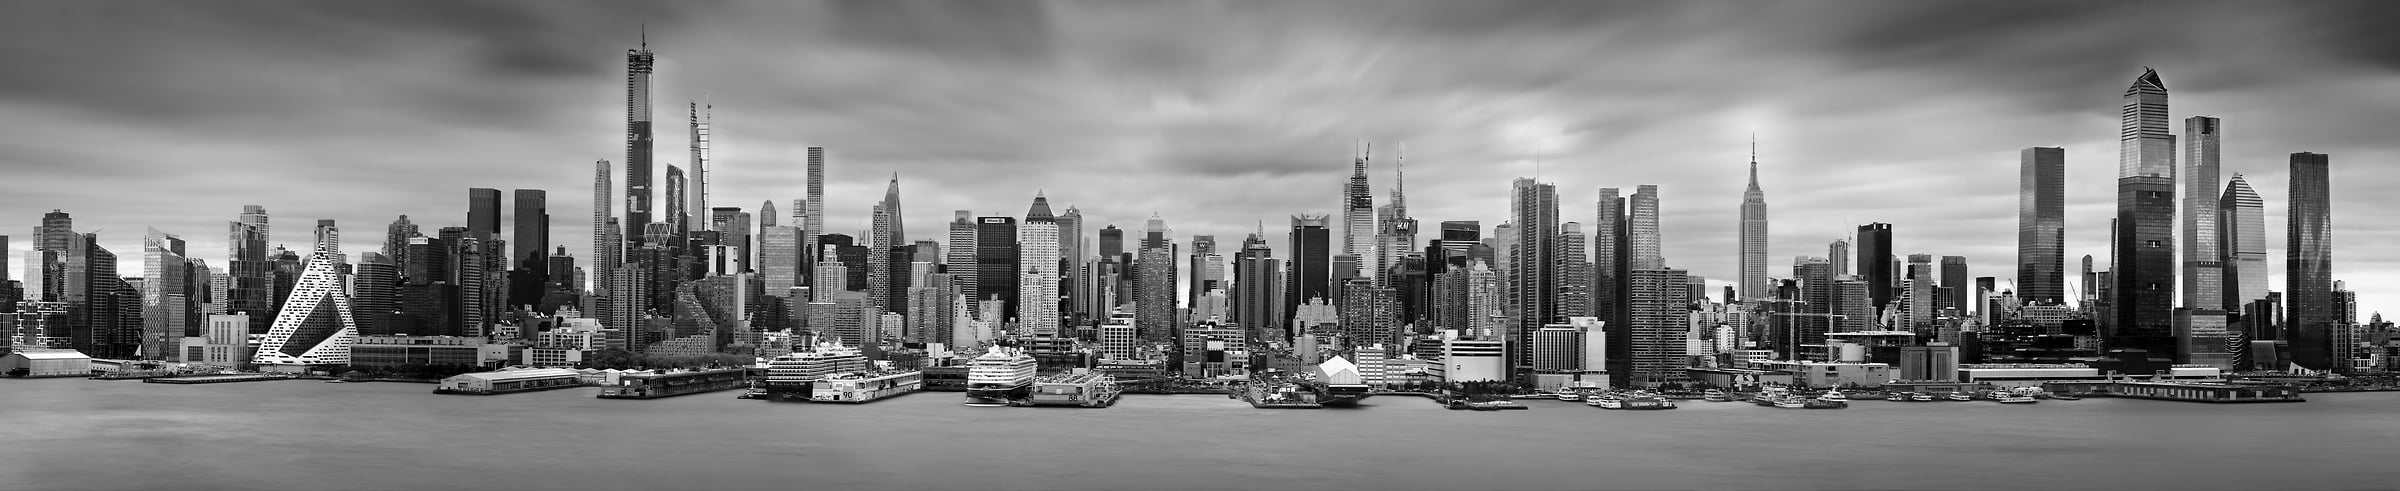 988 megapixels! A very high resolution, big VAST photo print of the New York skyline; black & white photograph created by Phil Crawshay in Weehawken, New Jersey